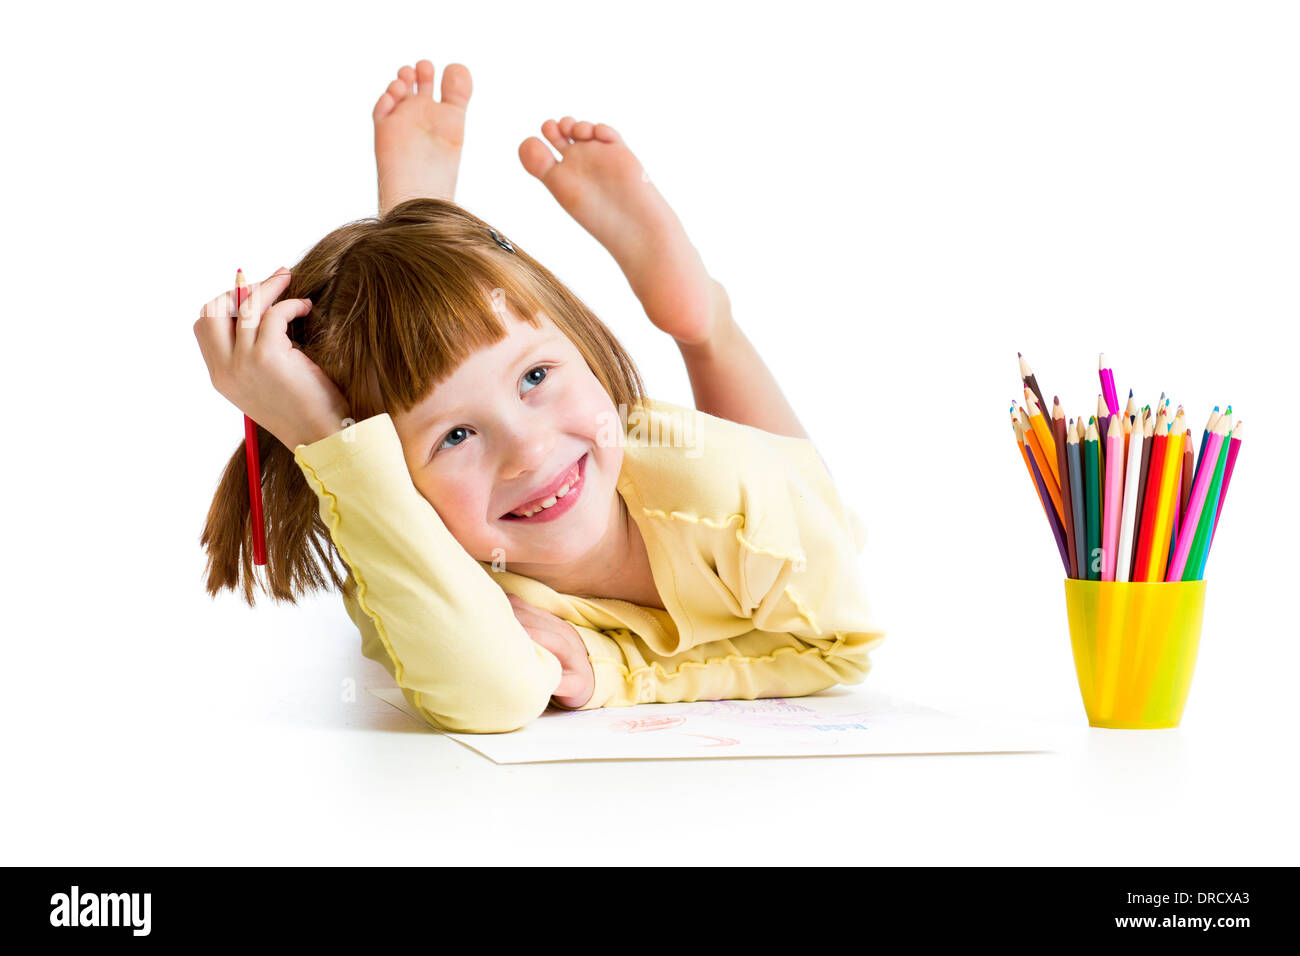 kid girl drawing with pencils - Stock Image